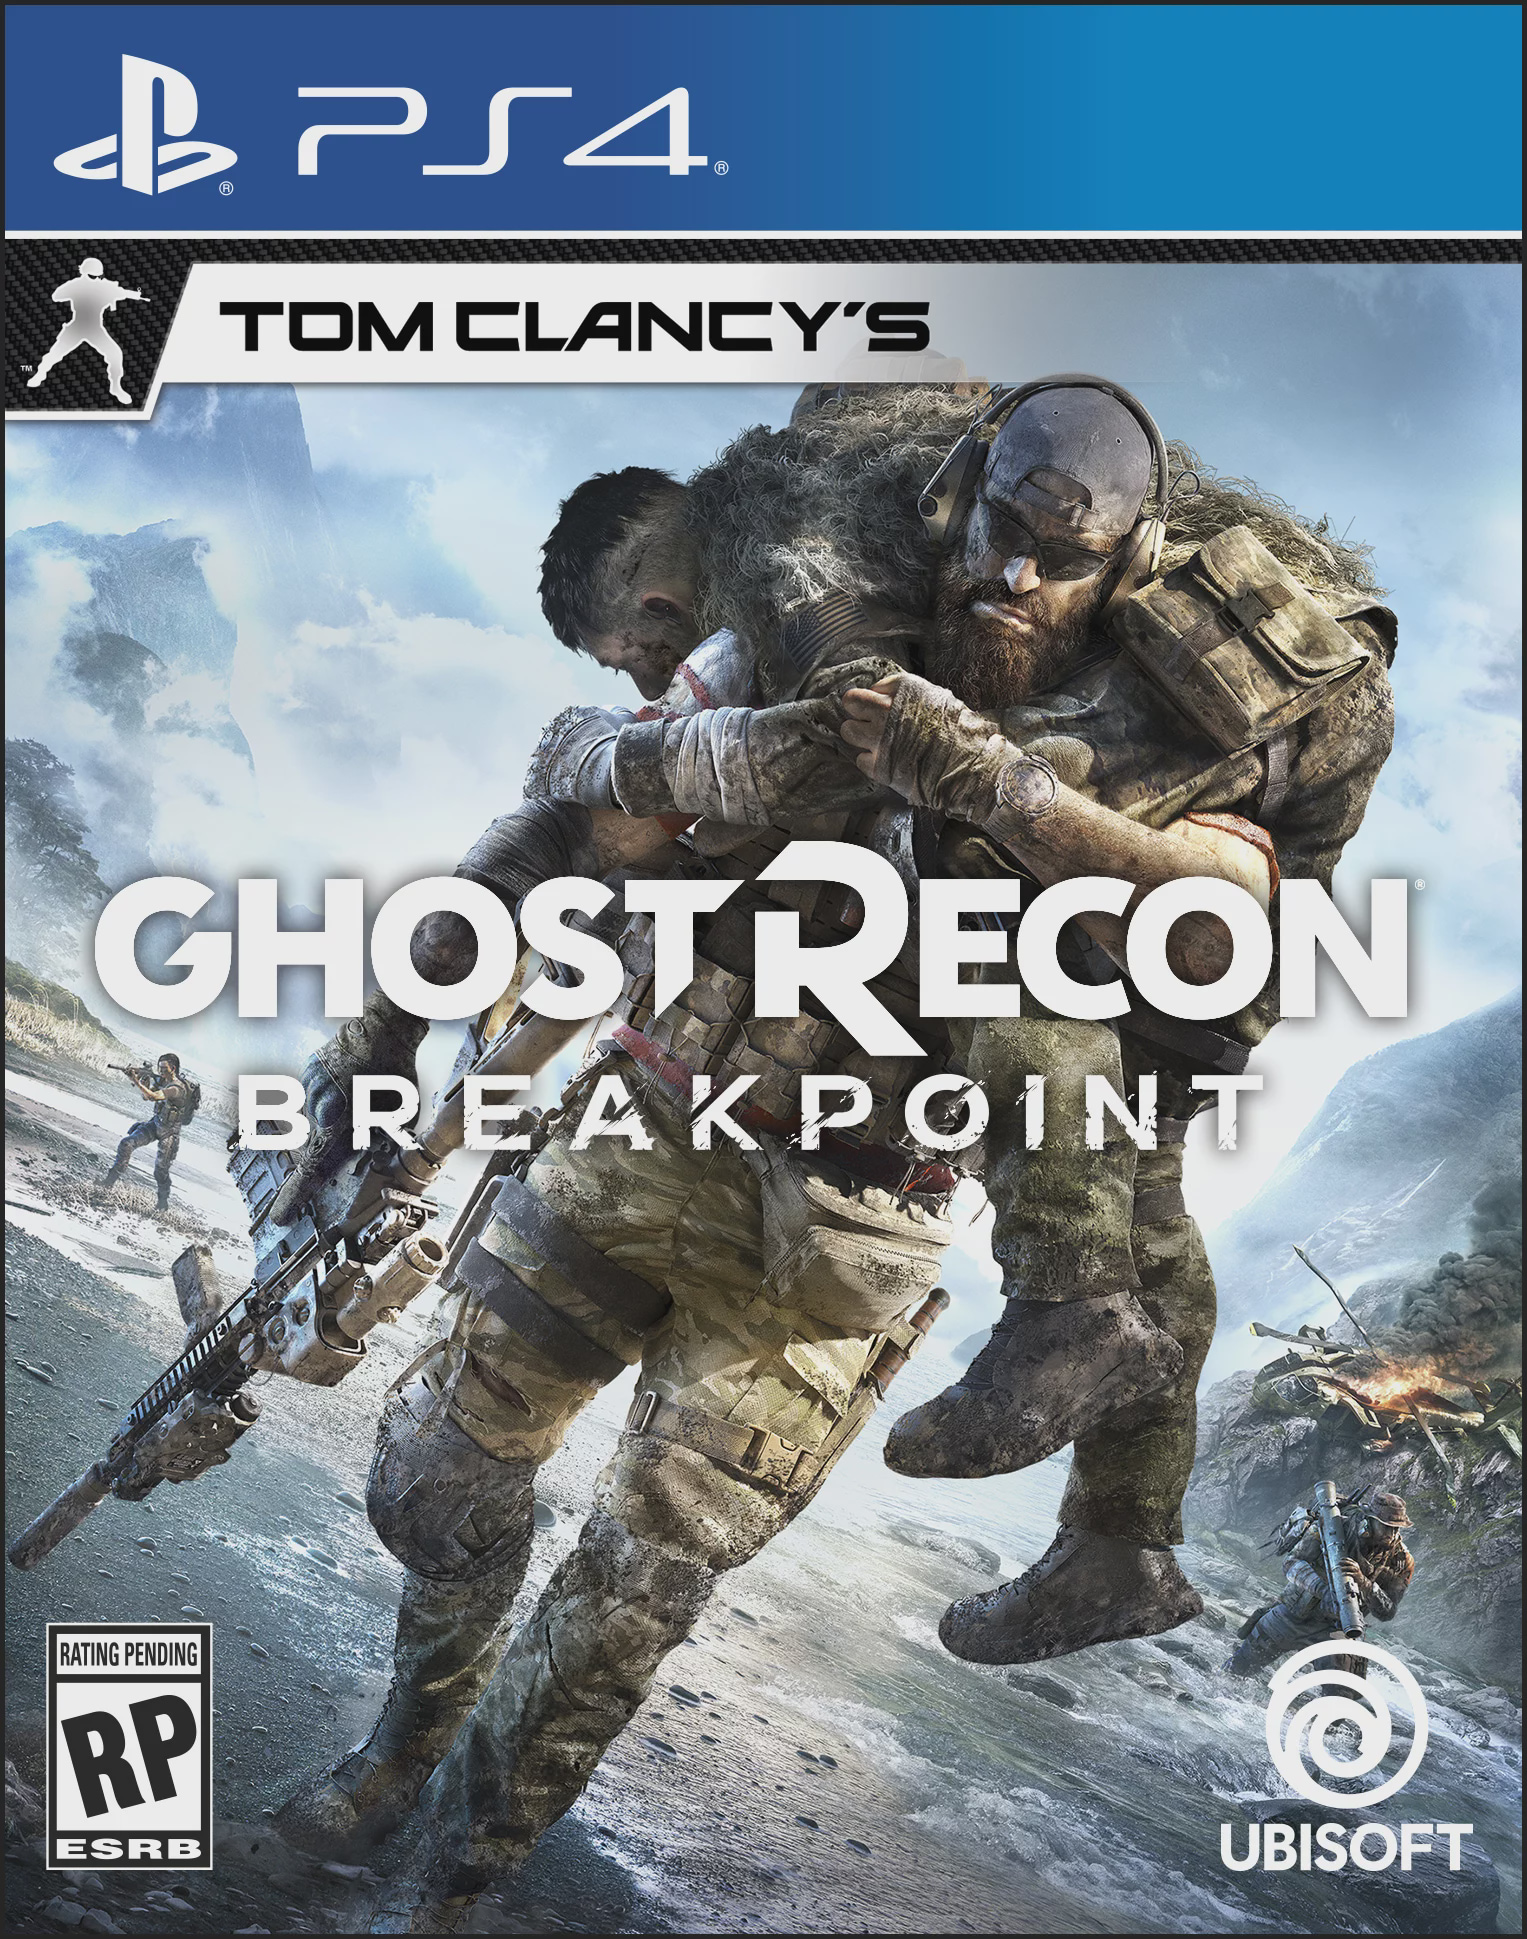 DAY 2 Tom Clancy's Ghost Recon Breakpoint, PlayStation 4, 887256090449